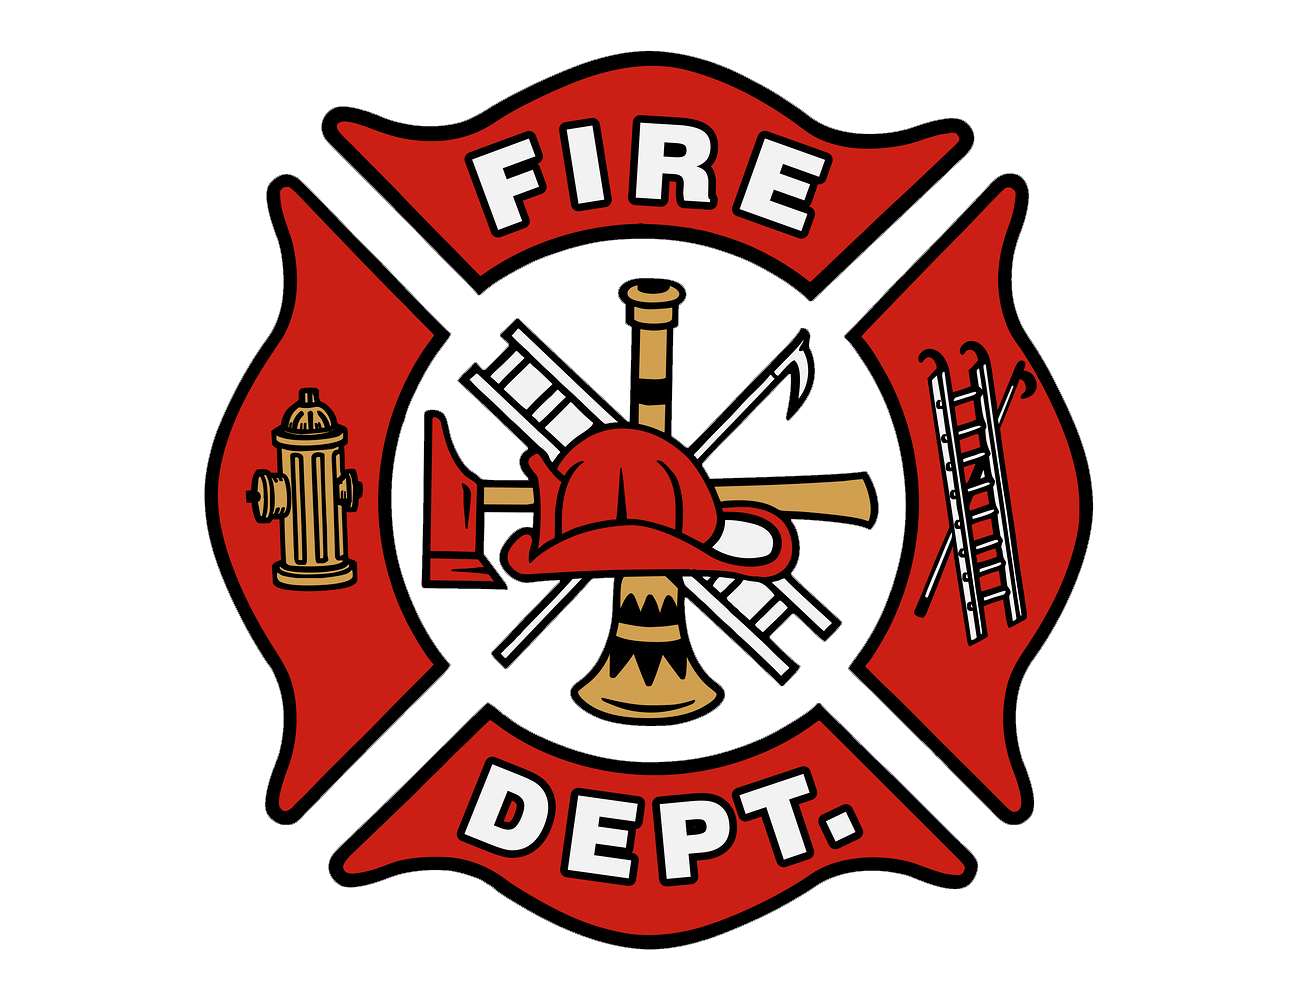 Volunteer Fire Department logo